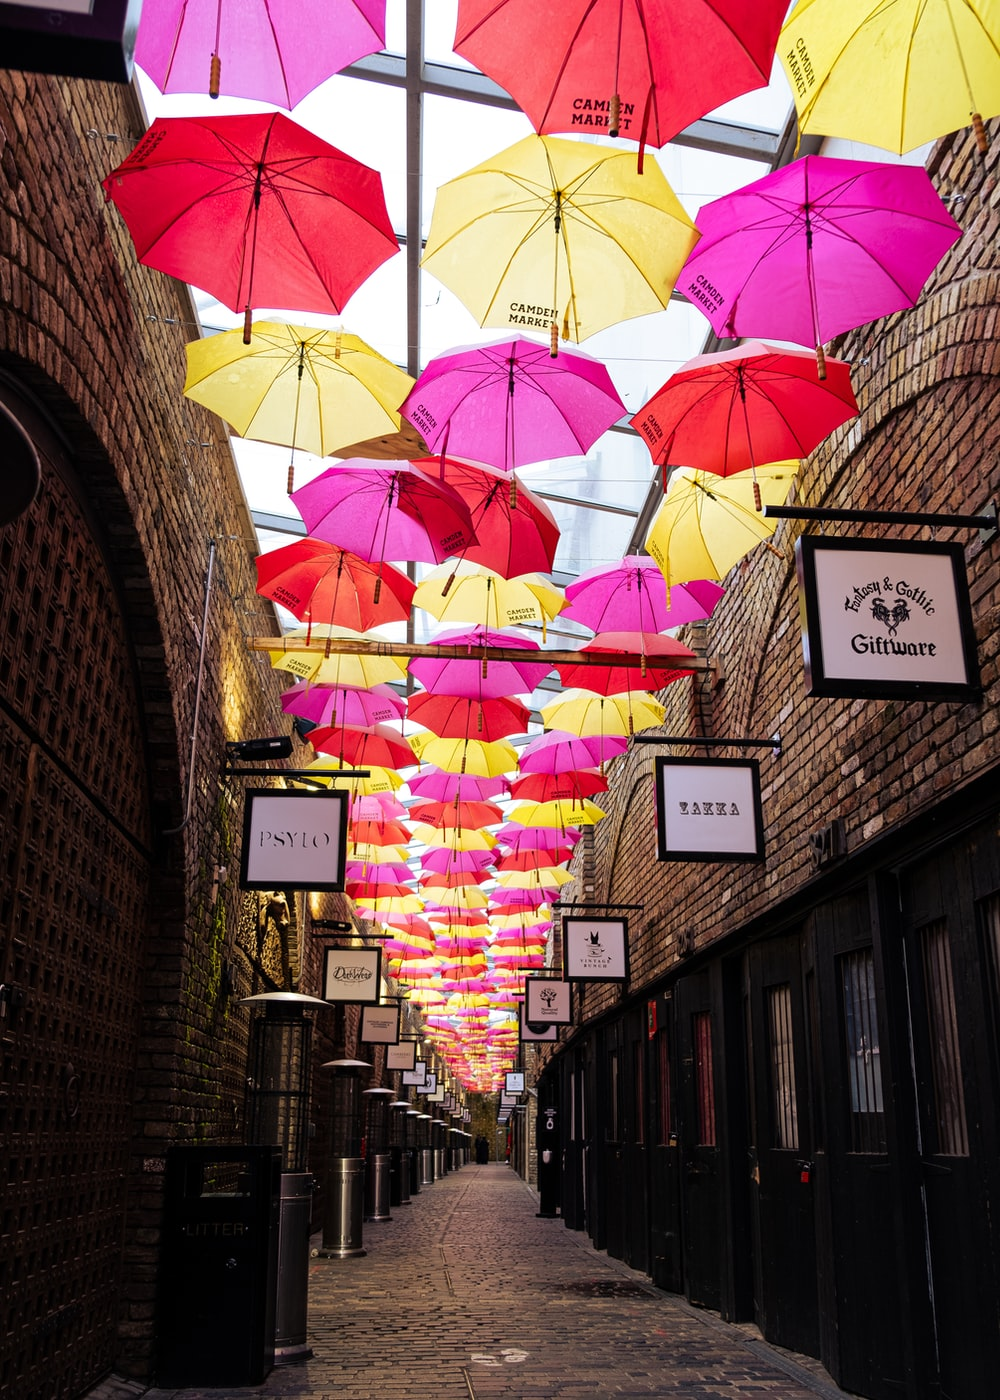 assorted umbrellas hanging on brown brick wall